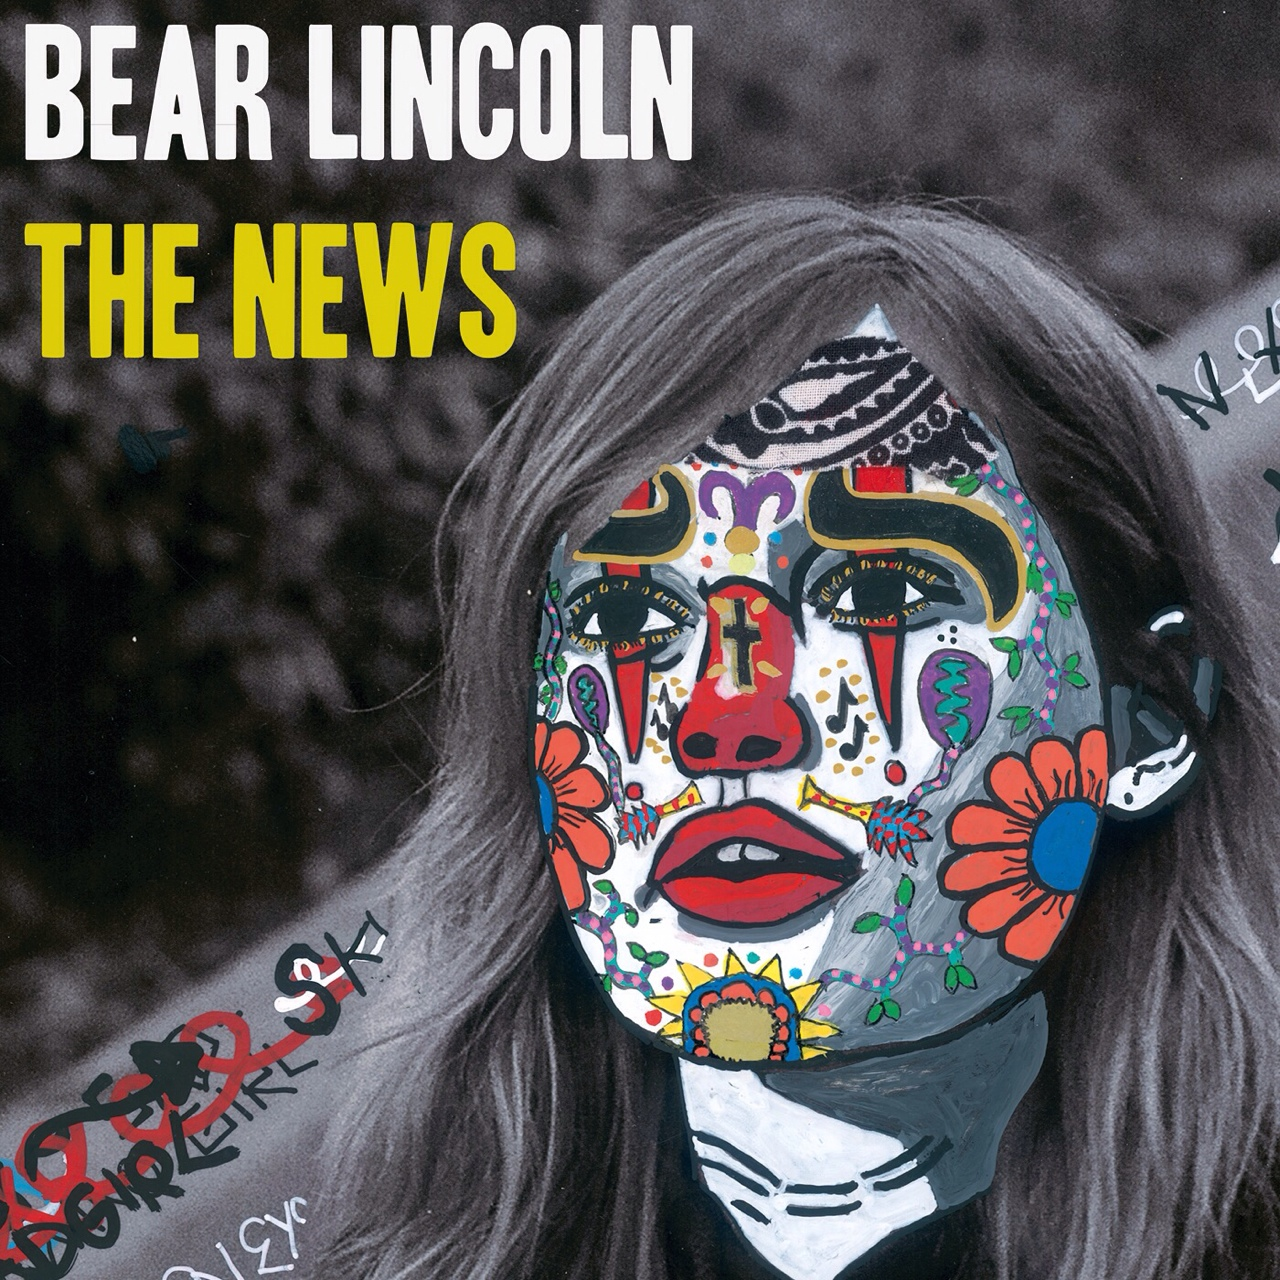 'The News' will be officially released on Tuesday 9/9, and we're excited to show you the cover artwork by Nick Angelo. Check out more of his compelling work here -  http://www.nick-angelo.net